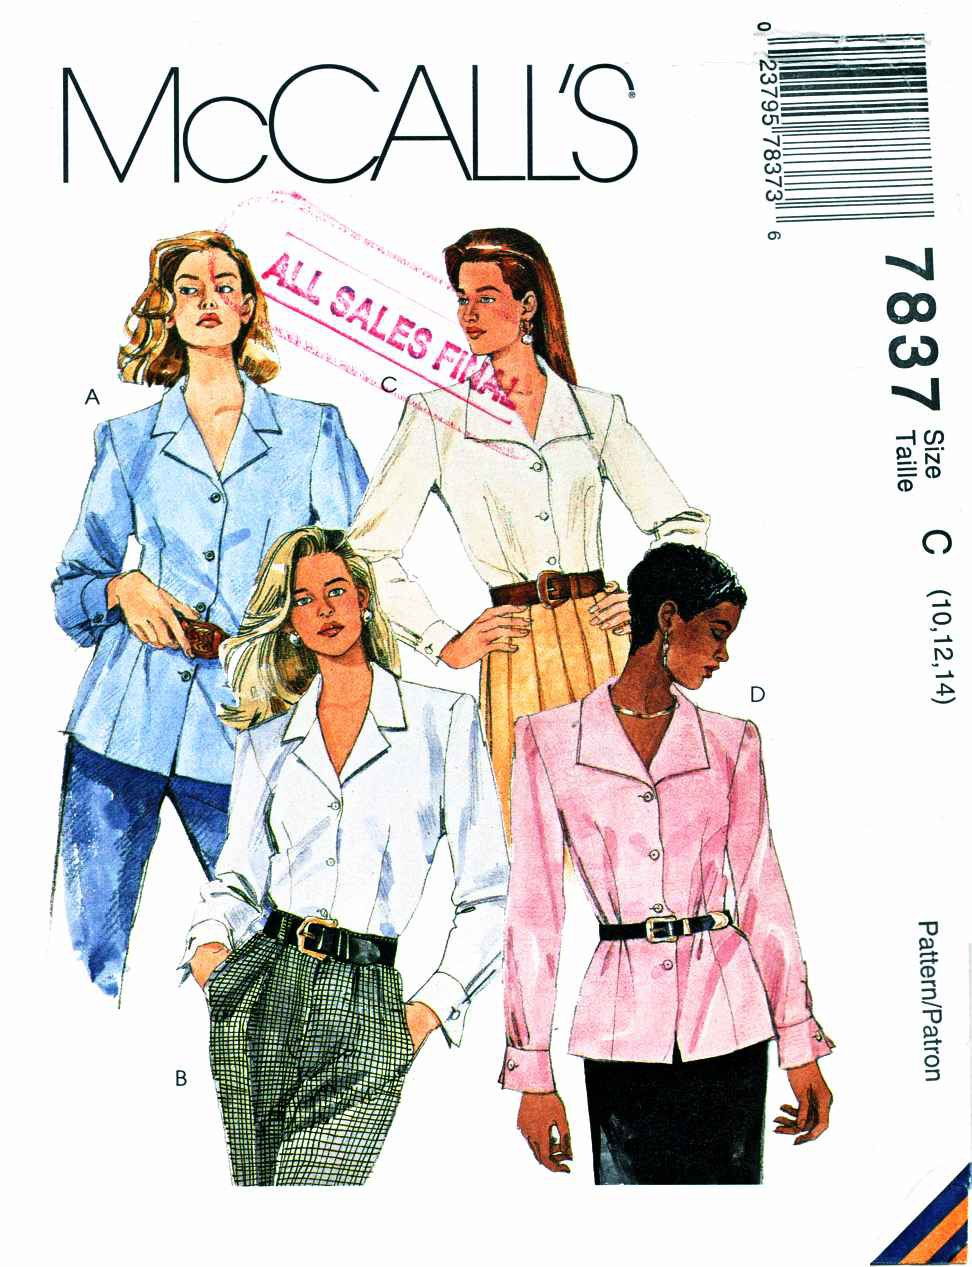 McCalls Sewing Pattern 7837 Misses Size 10-14 Button Front Long Sleeve Blouse Shirt